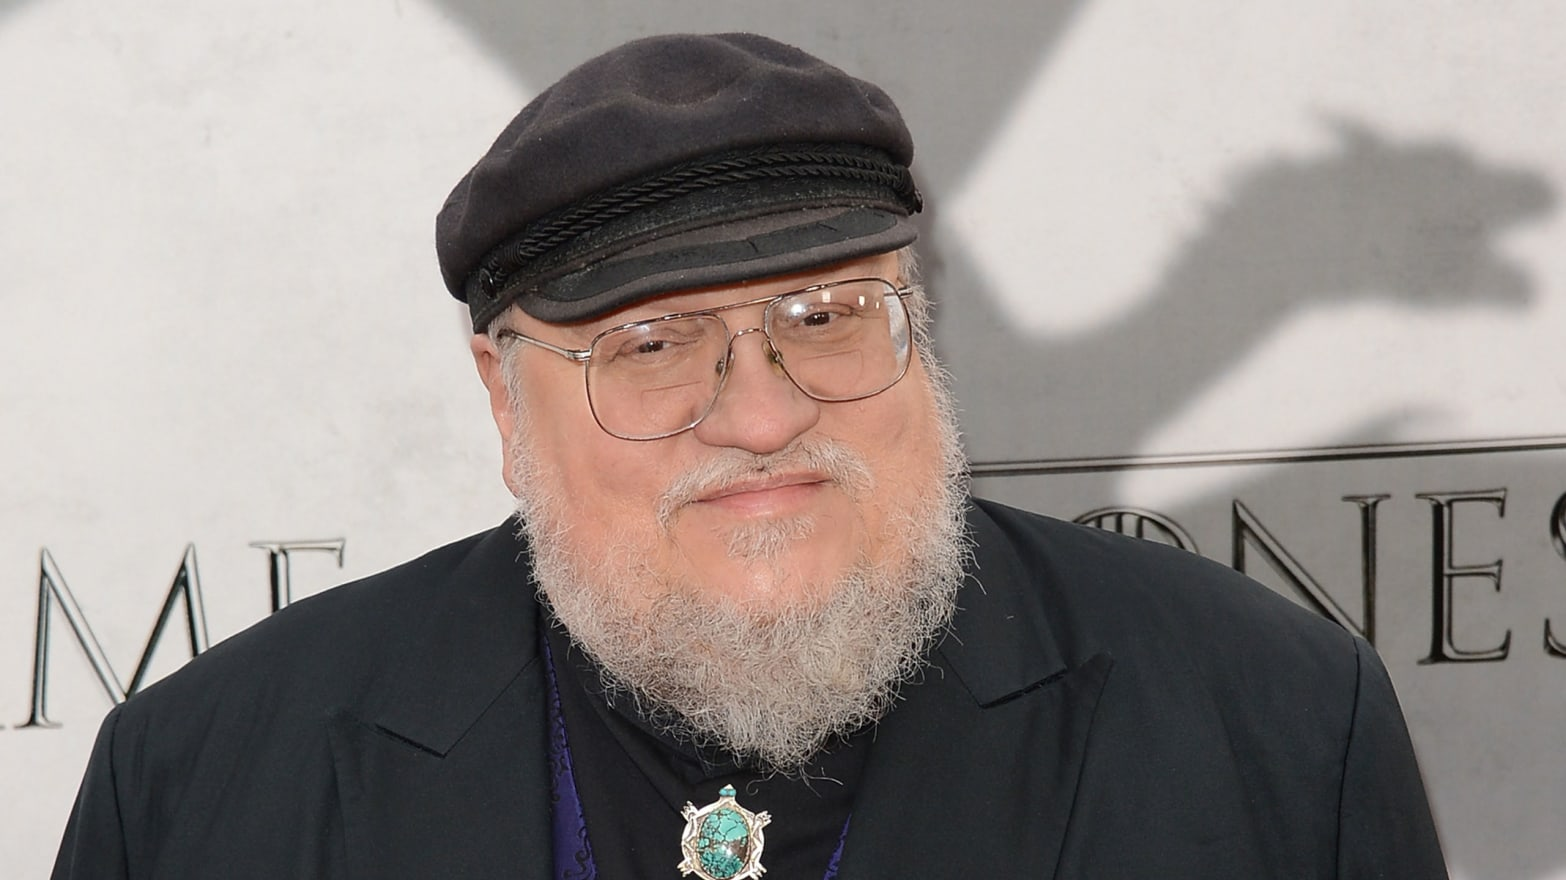 The Winds of Winter Release Updates George RR Martin hints on the GOT Book Progress